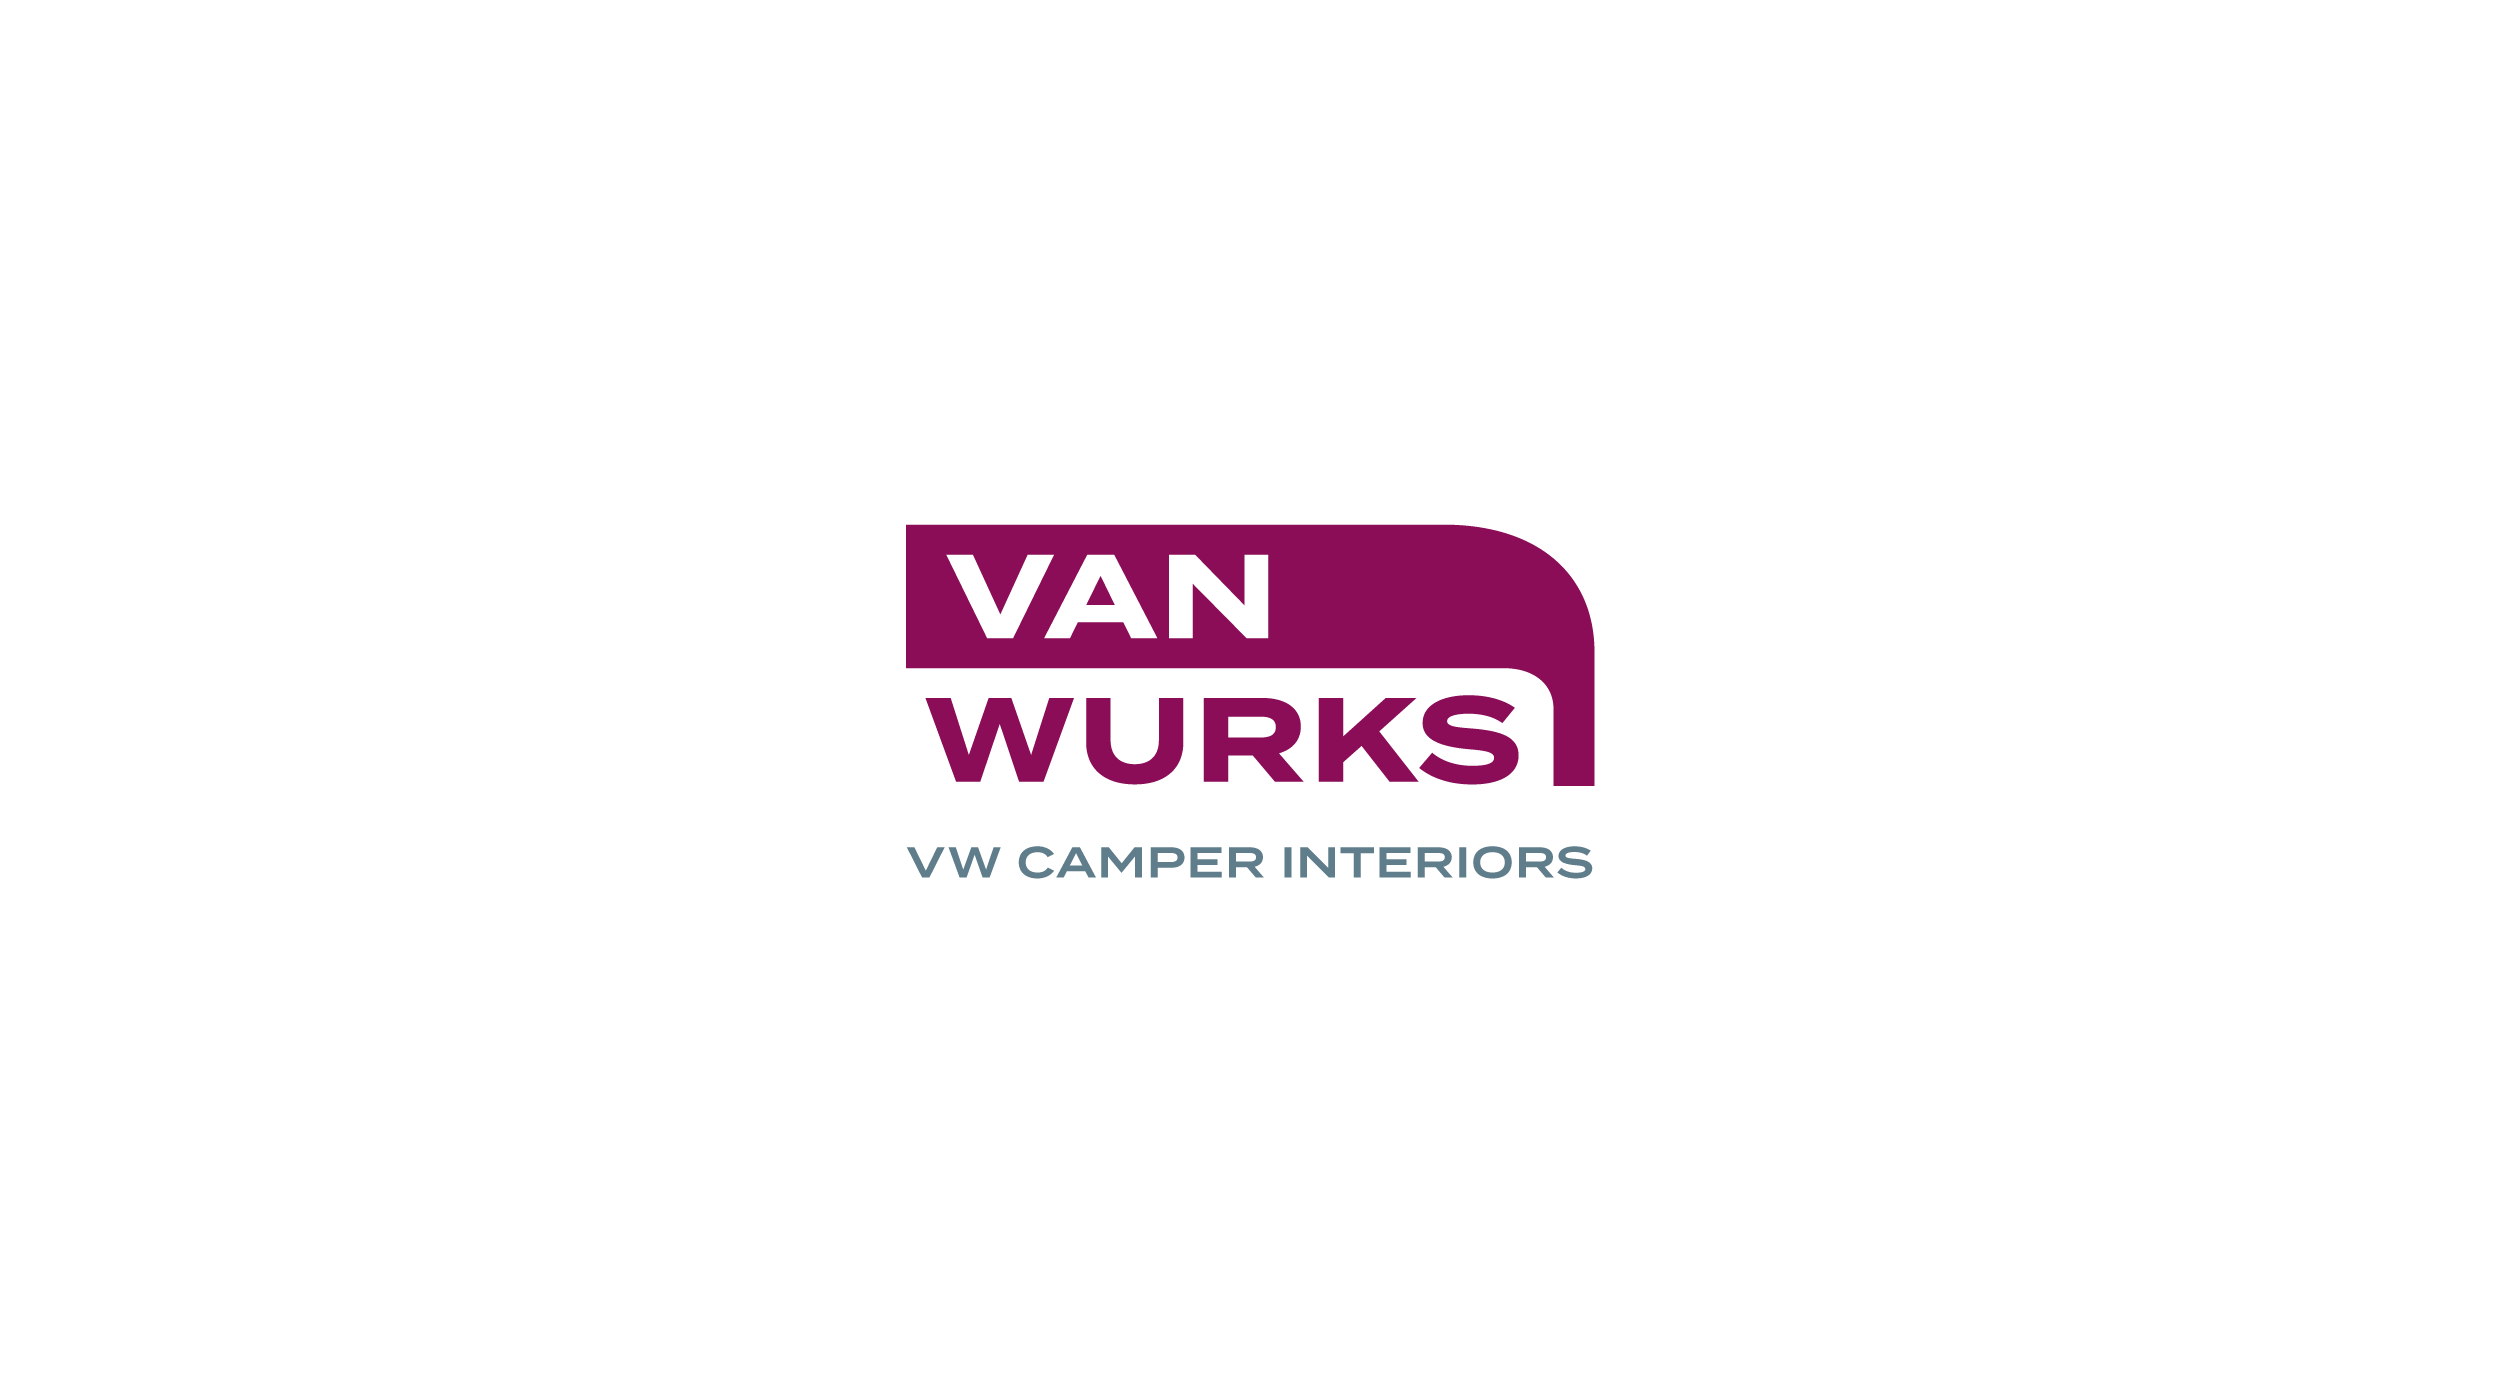 Van-Wurks-Logo-by-Ian-Whalley.png